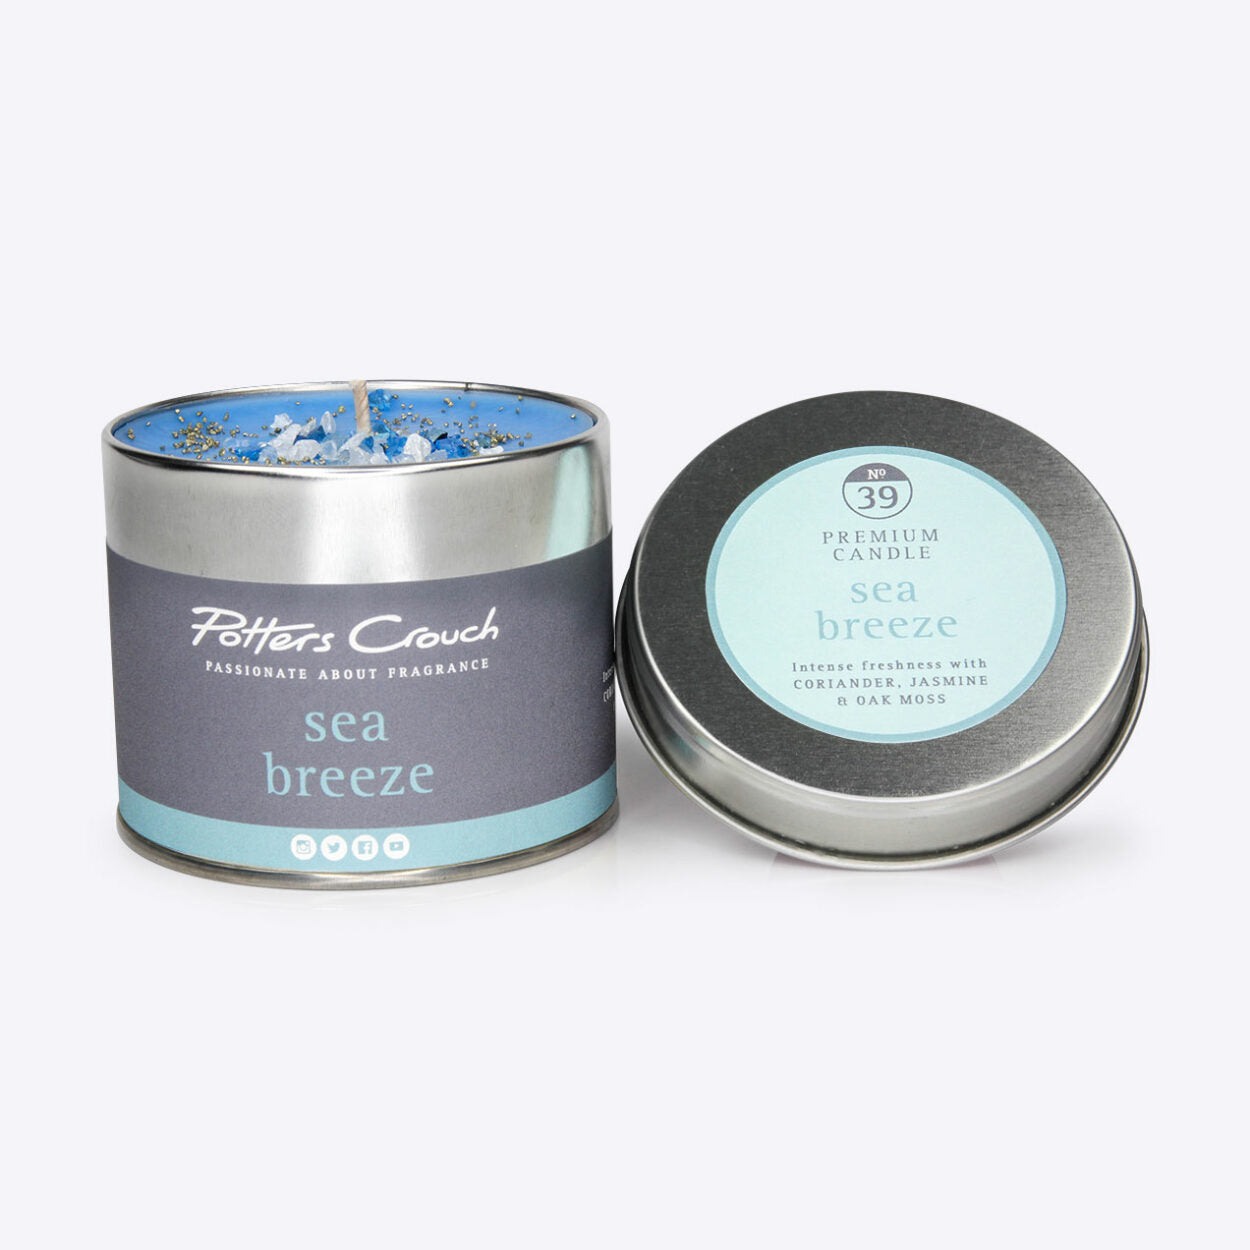 Sea Breeze Scented Candle in a Tin